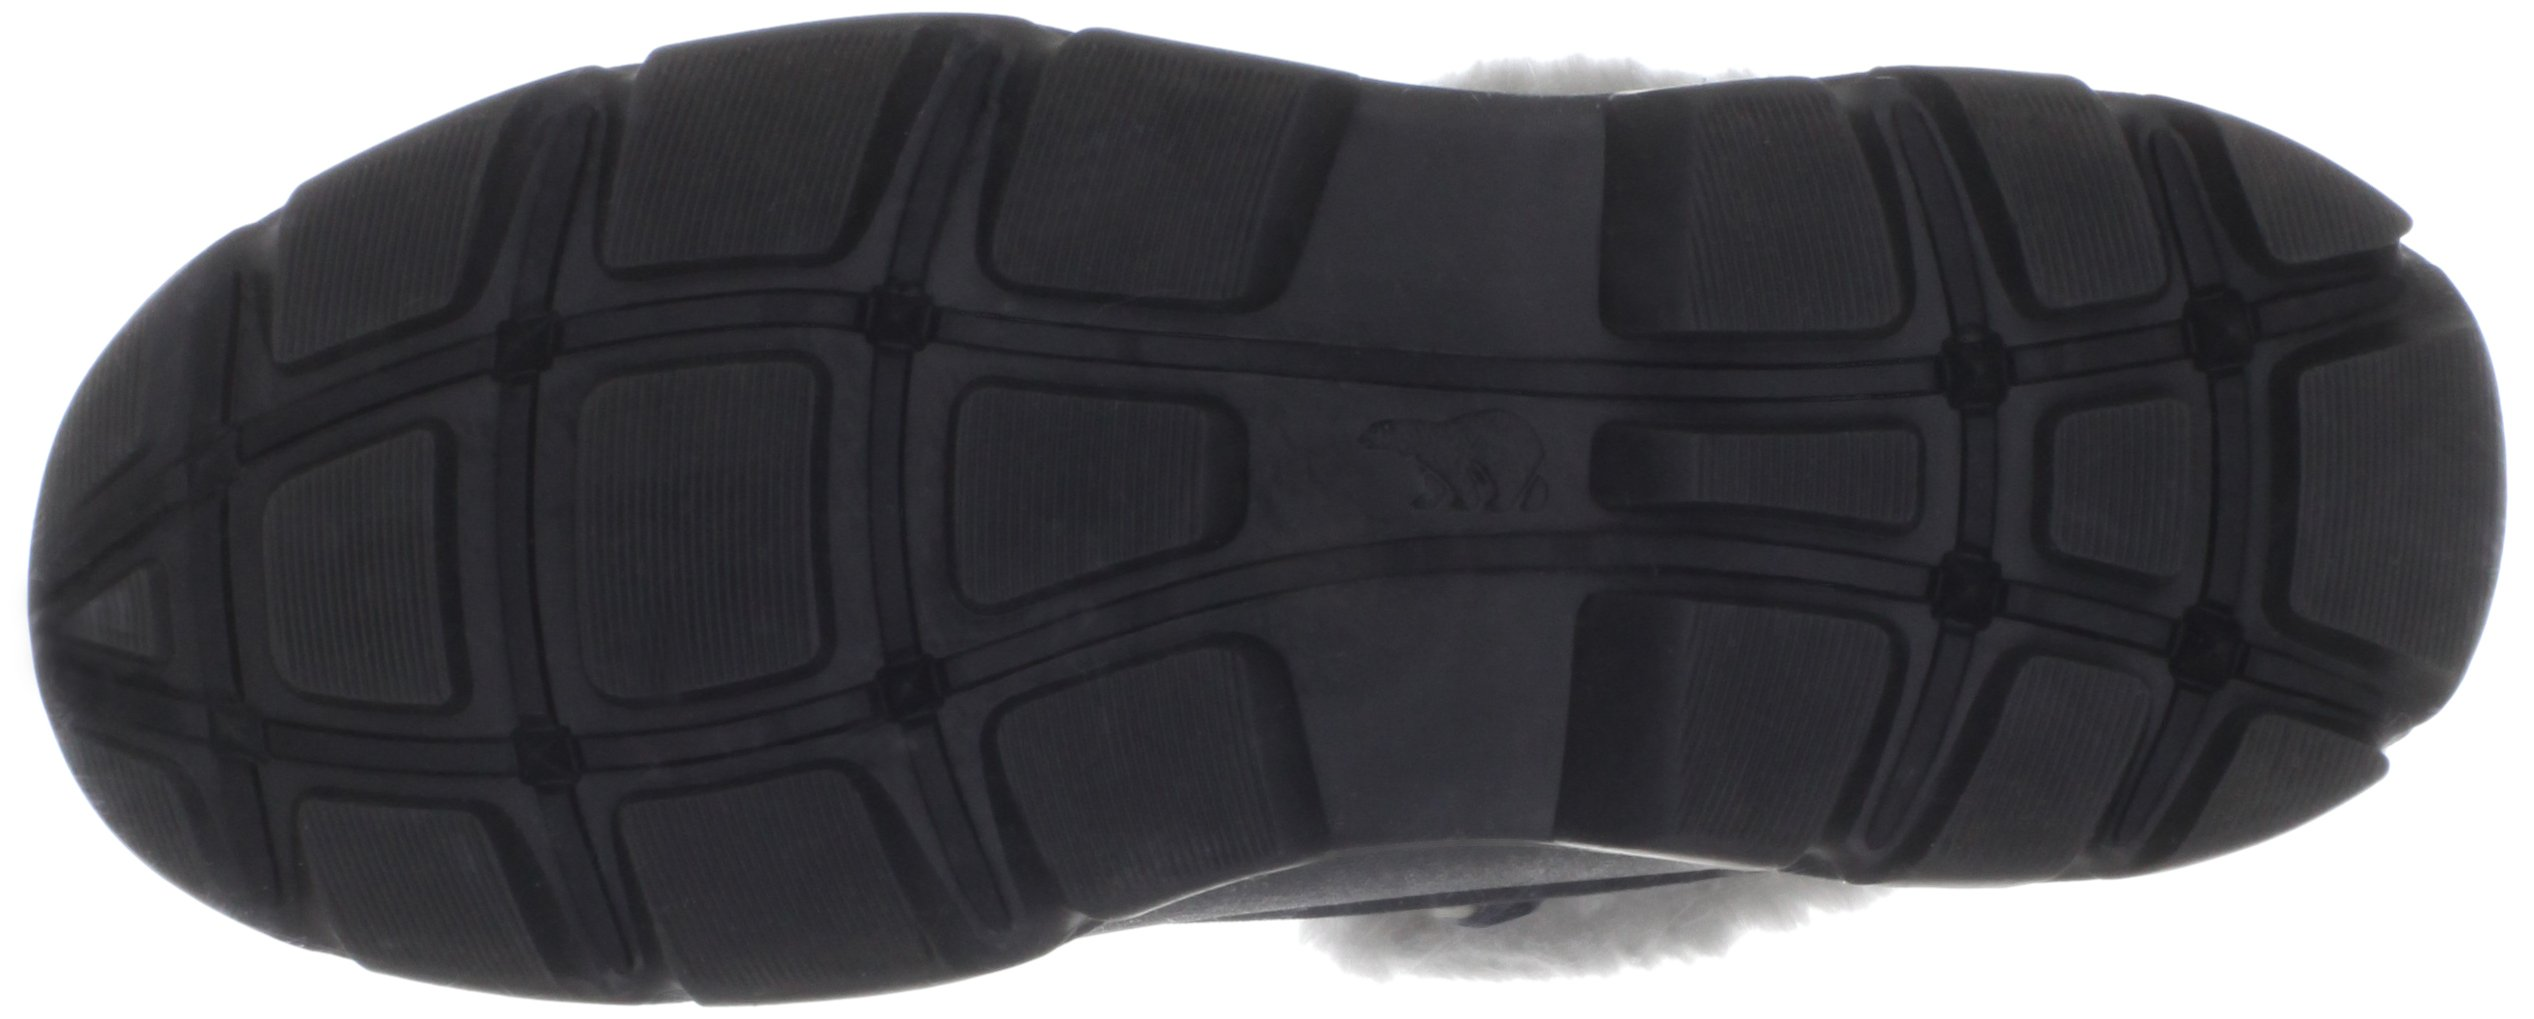 Sorel Women's Snow Angel Lace Boot,Charcoal,8 M US by SOREL (Image #3)